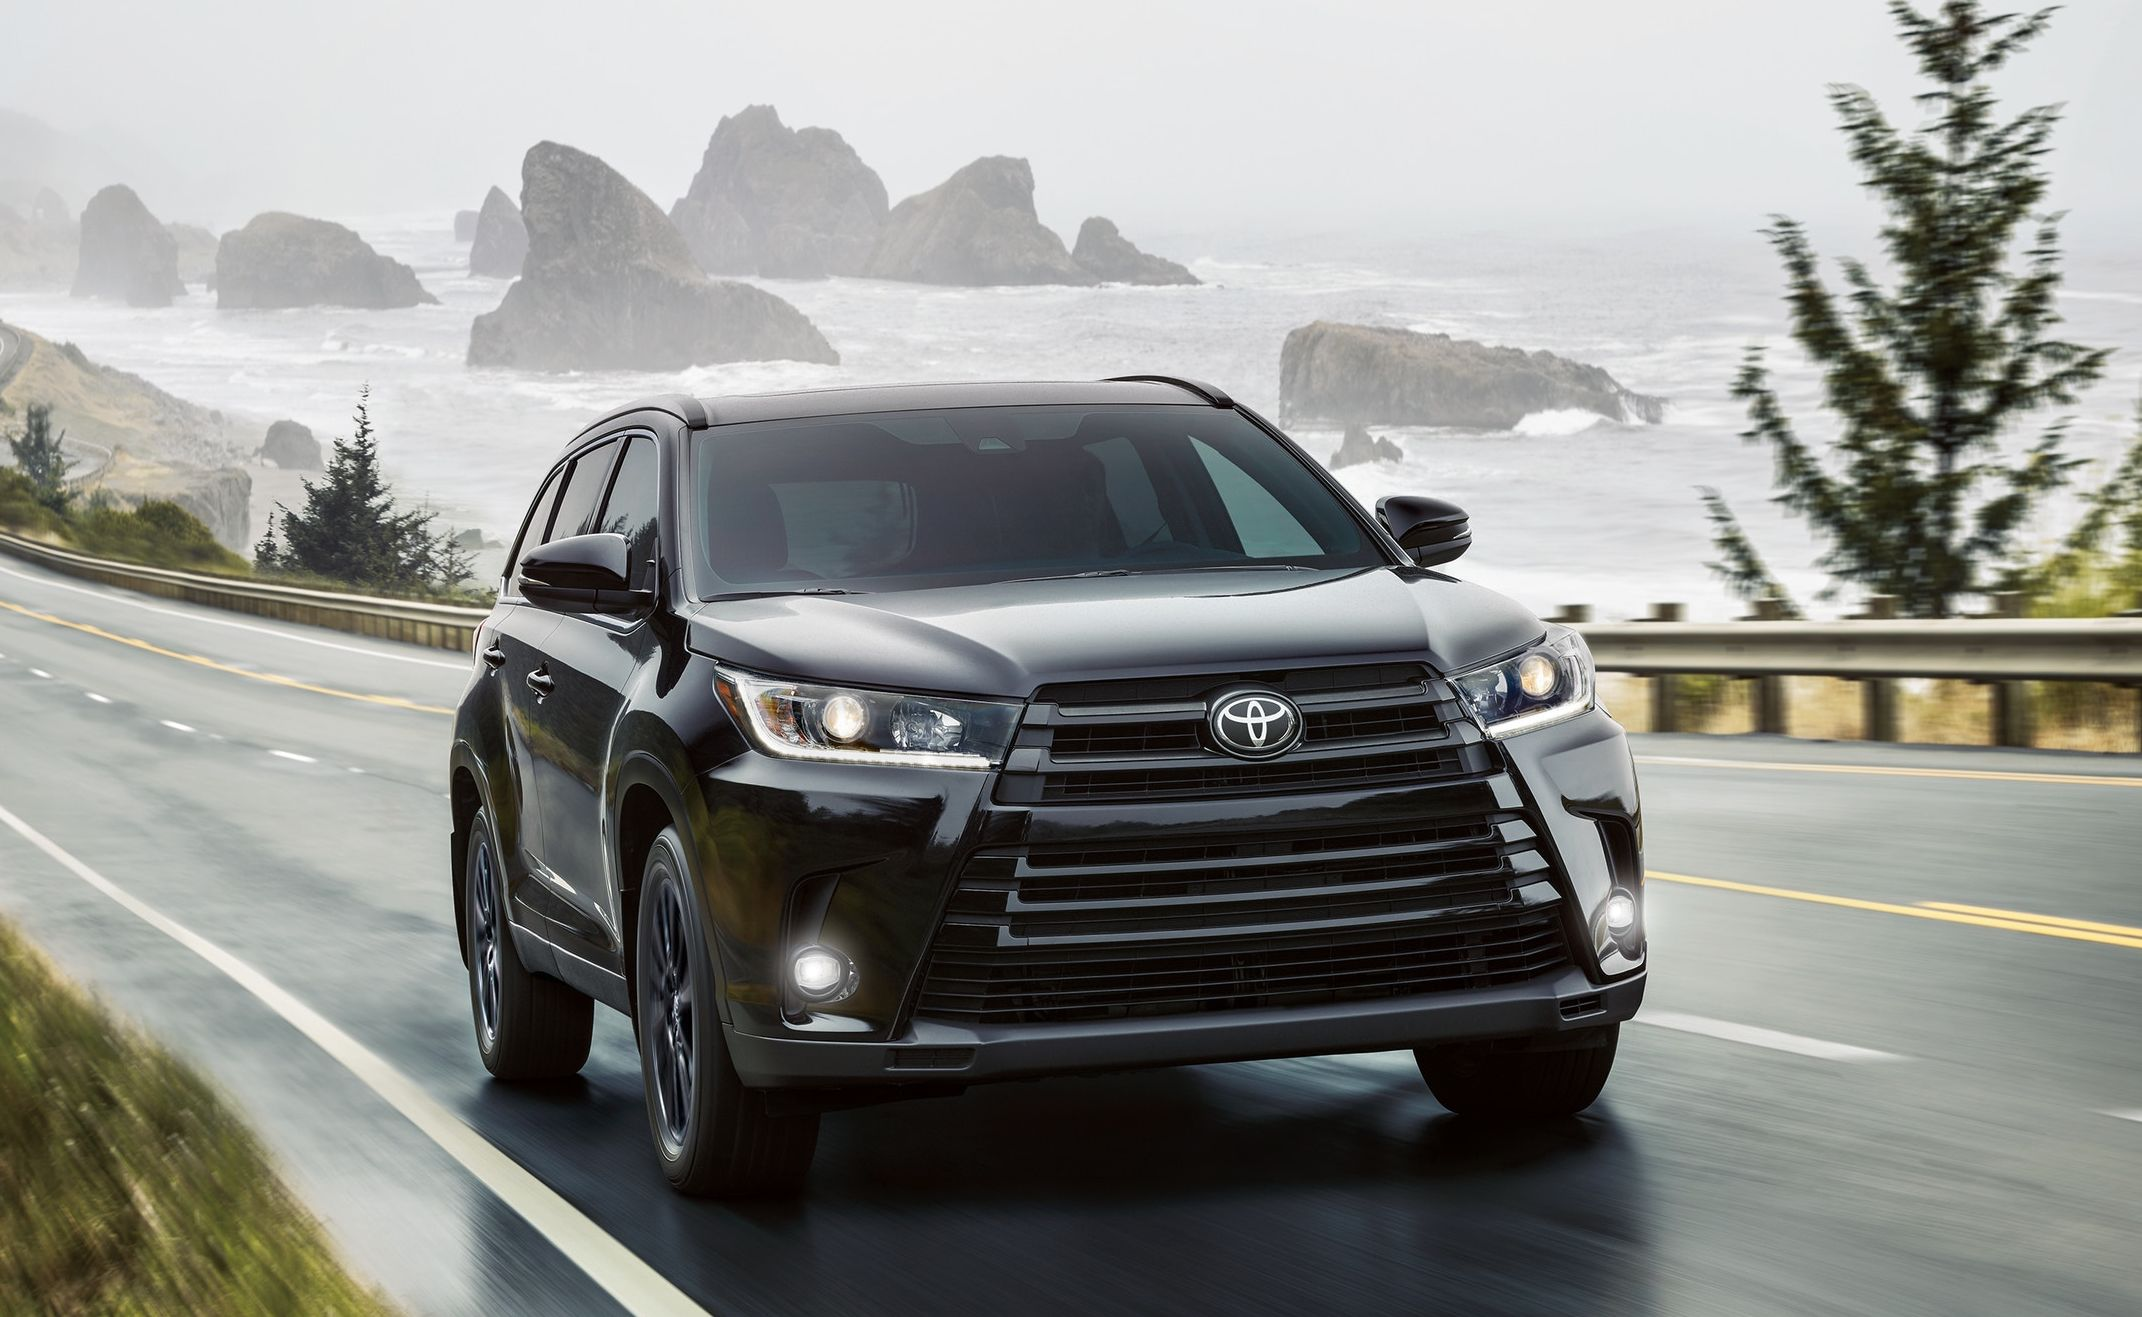 2019 Toyota Highlander for Sale near Naperville, IL